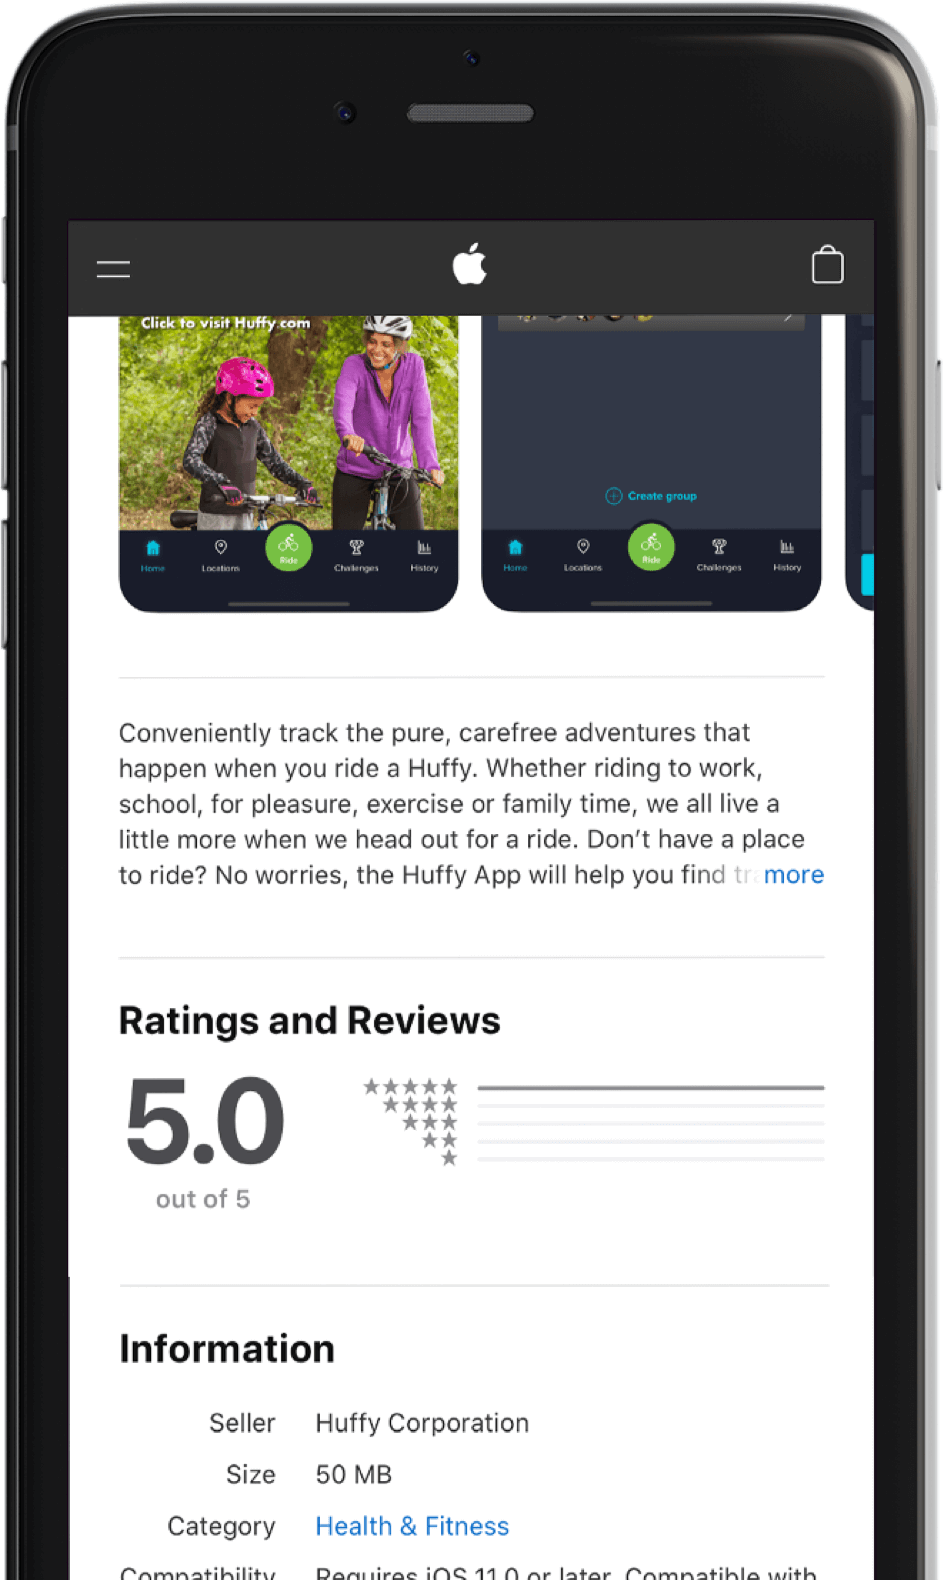 Huffy app gets 5-star review on Apple Store